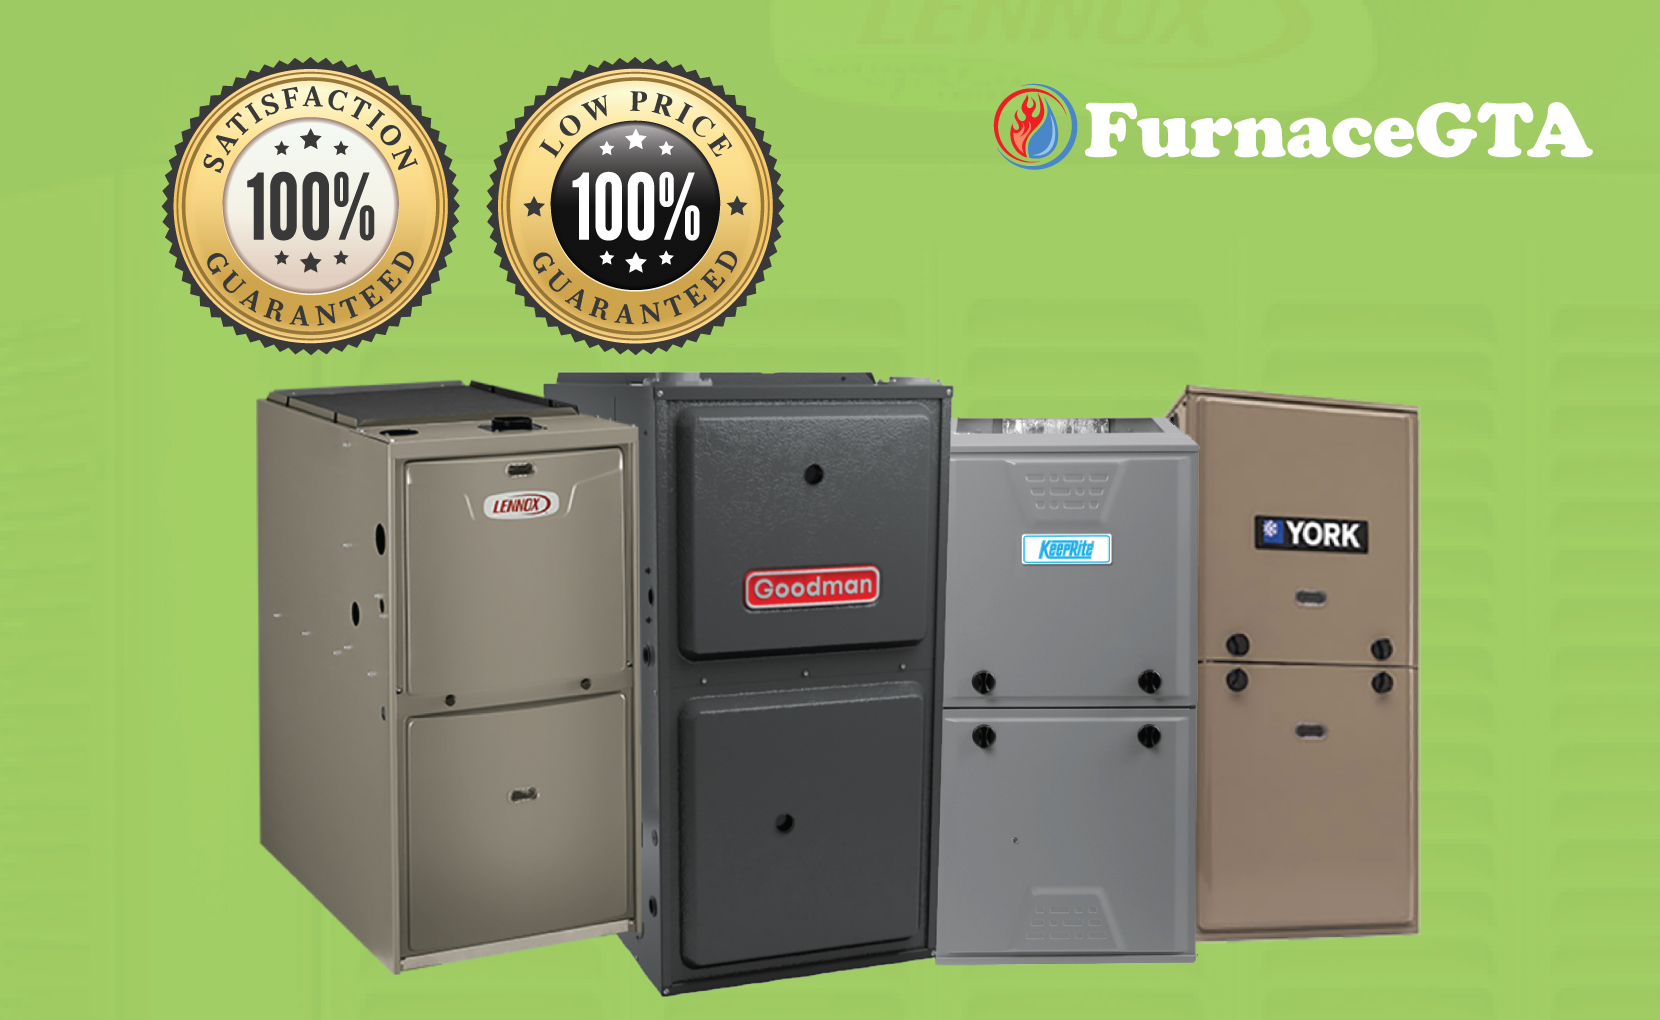 Benefits of a Furnace